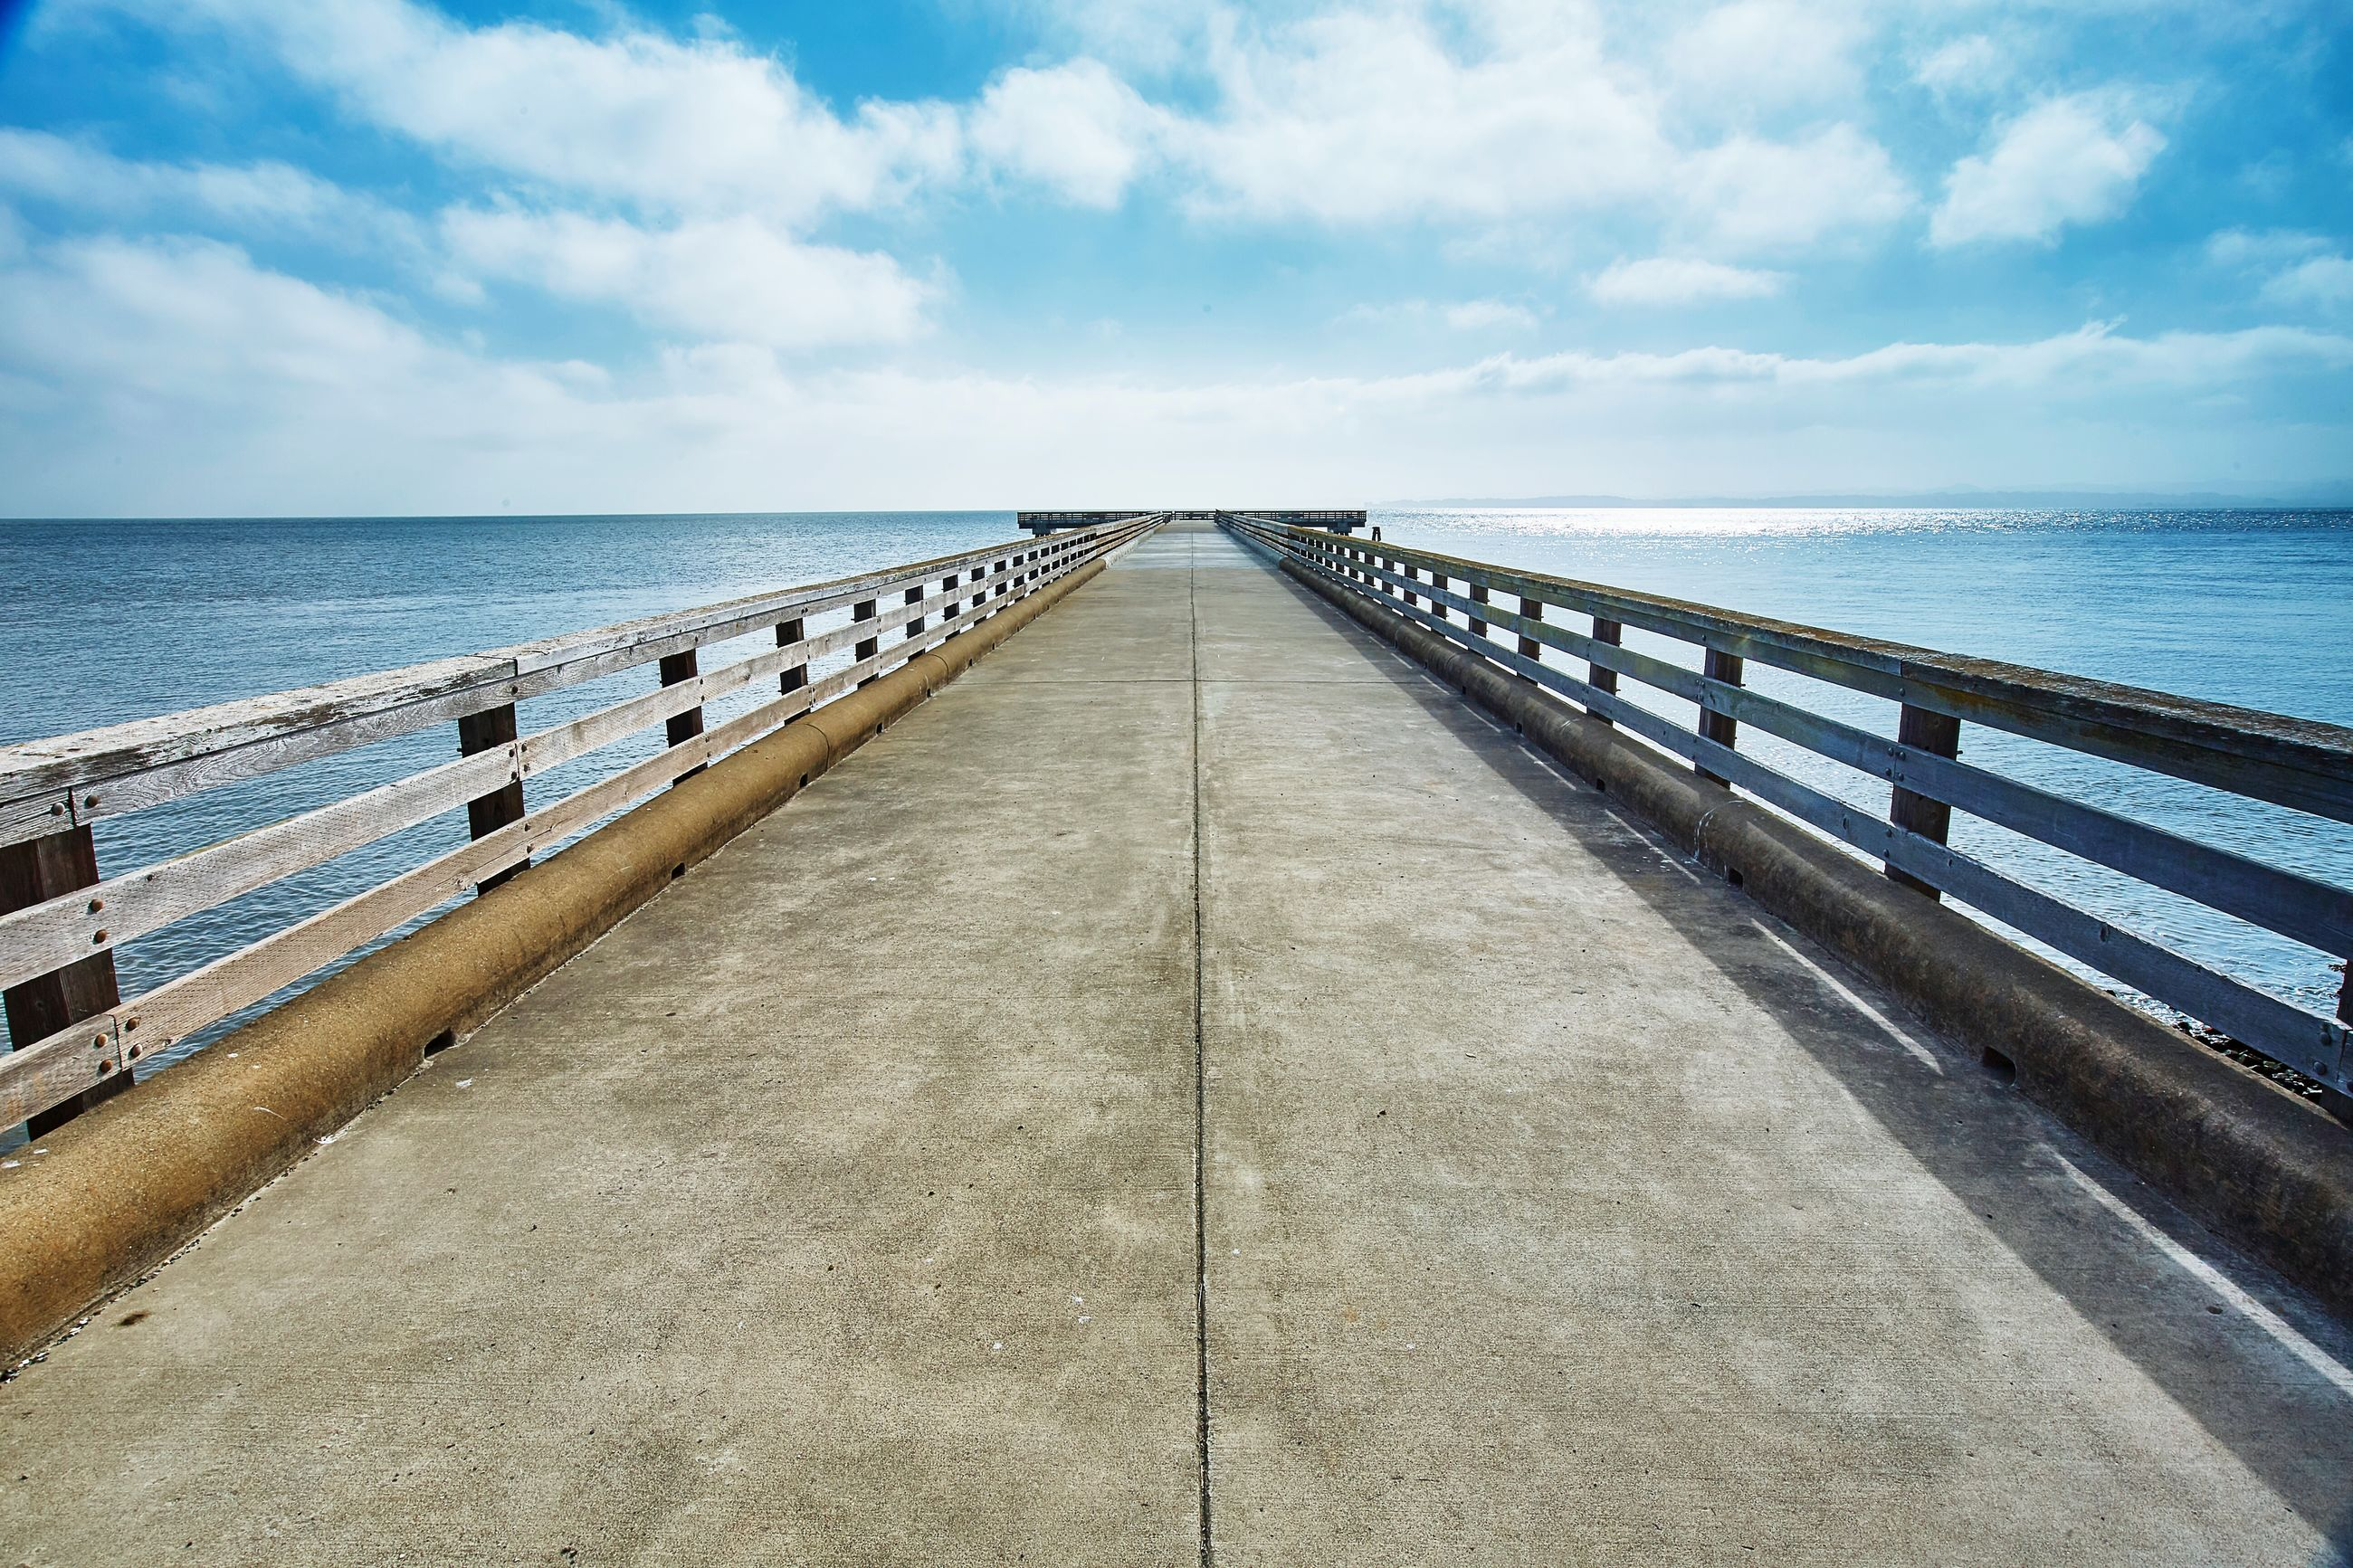 sea, horizon over water, water, sky, the way forward, diminishing perspective, cloud - sky, pier, tranquil scene, railing, tranquility, cloud, scenics, blue, beach, long, vanishing point, beauty in nature, nature, cloudy